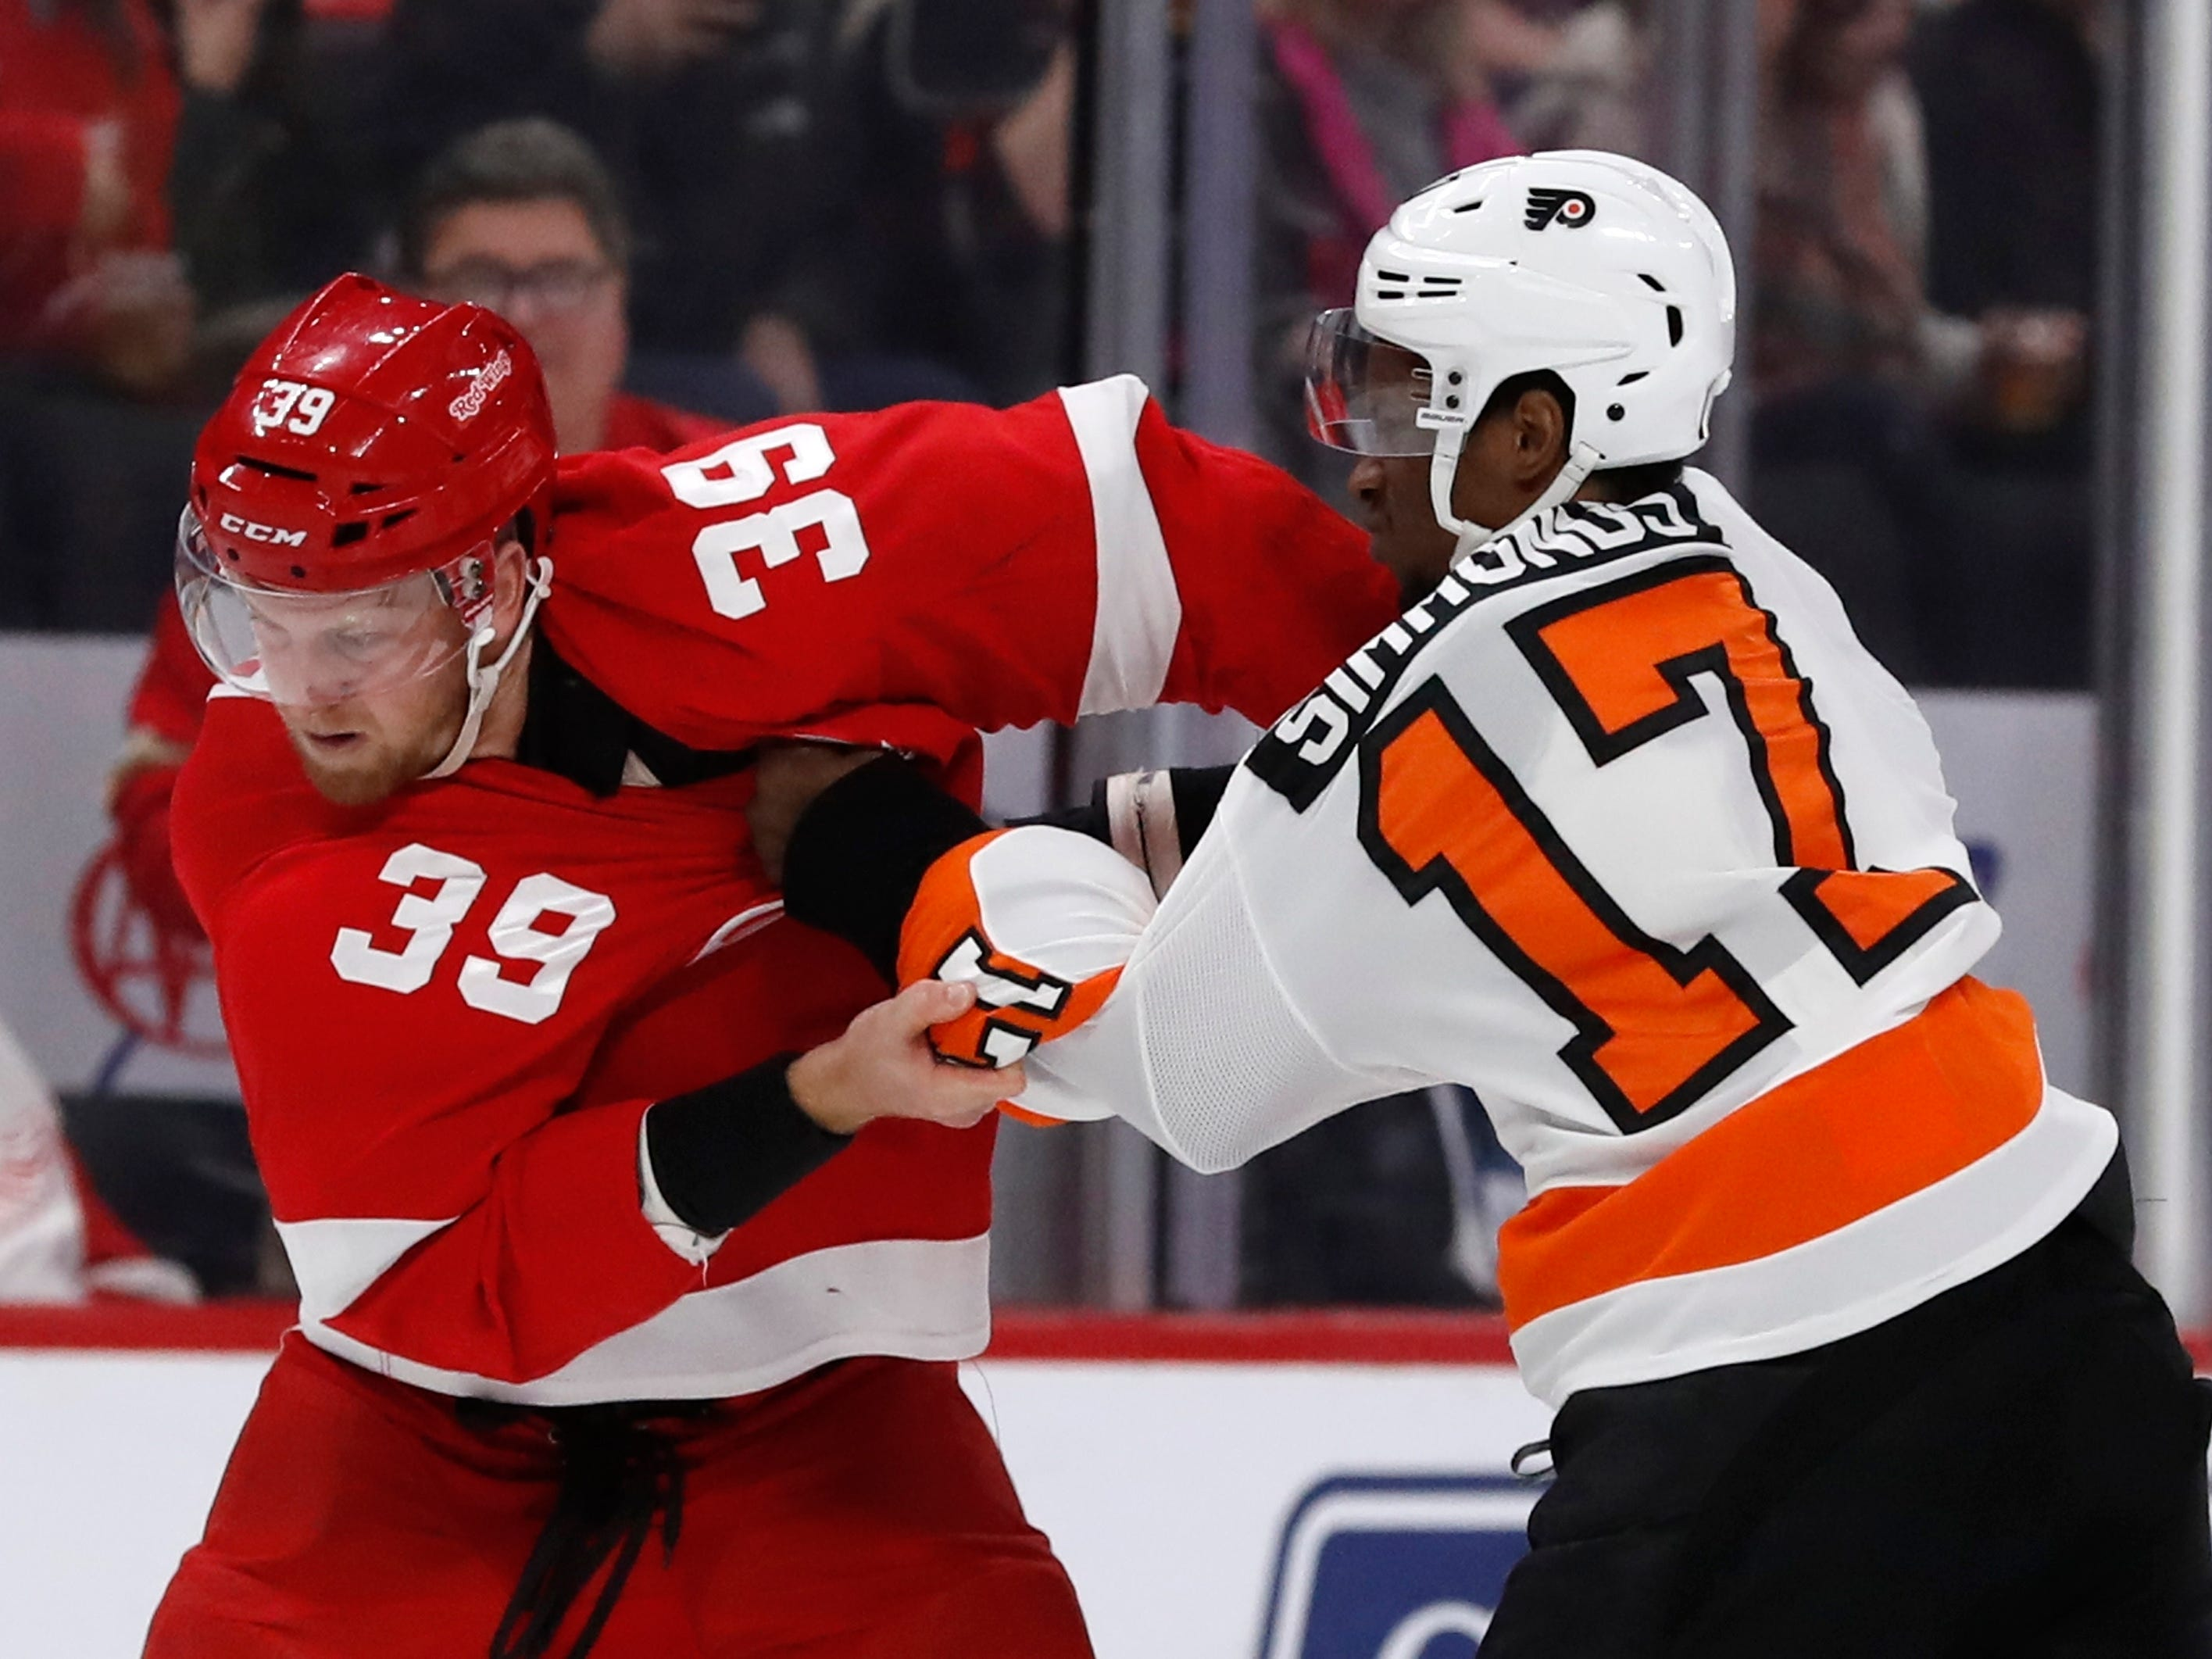 Red Wings forward Anthony Mantha (39) and Flyers forward Wayne Simmonds (17) fight during the first period on Feb. 17, 2019, in Detroit.